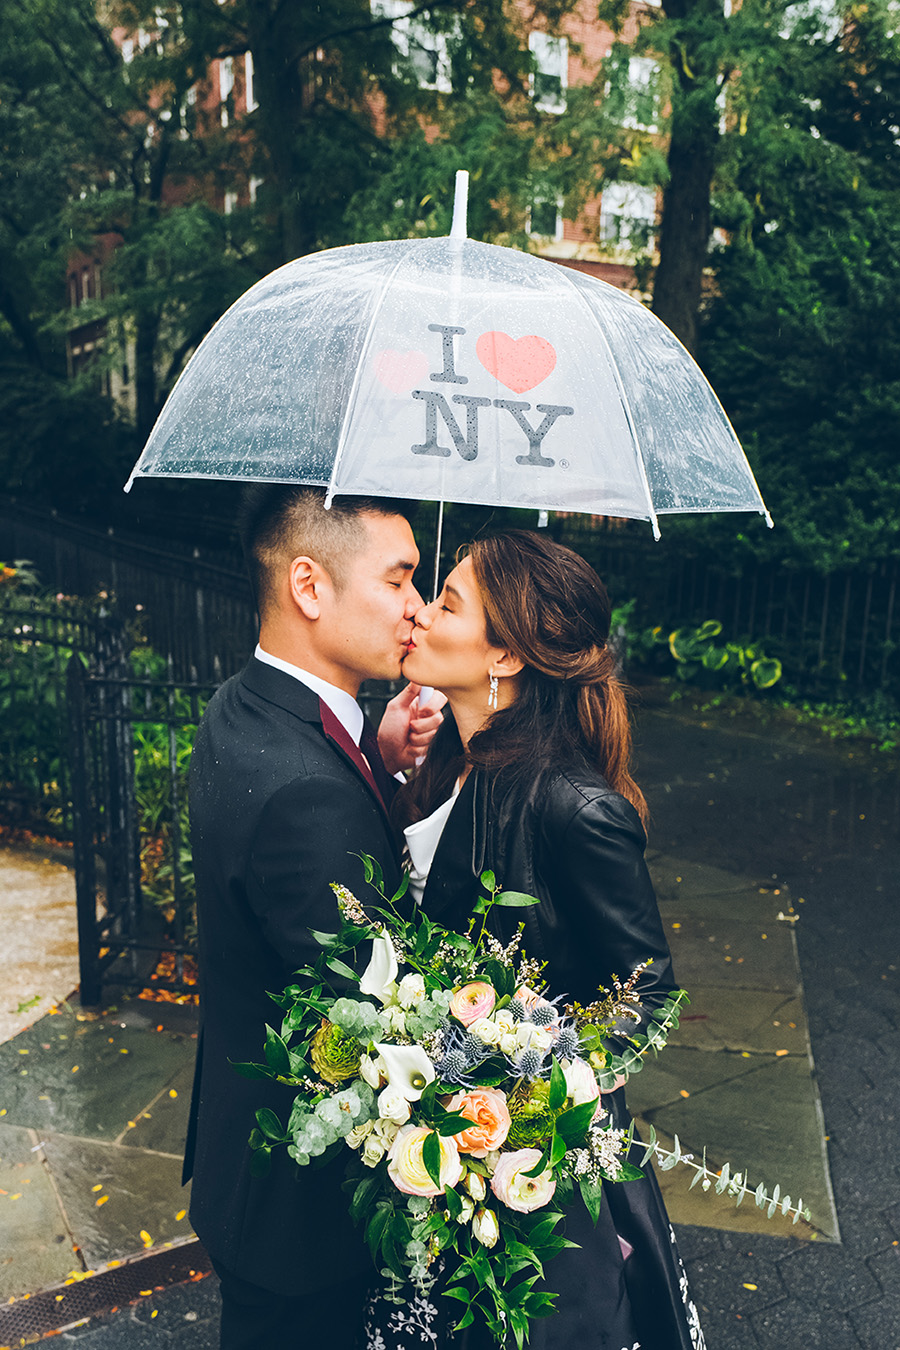 NEW-YORK-CITY-WEDDING-PHOTOGRAPHER-INTIMATE-WEDDING-ELOPEMENT-BROOKLYN-PROMENADE-CITYHALL-MANHATTAN-BROOKLYN-WEDDING-PHOTOGRAPHY-JackieAaron-0025.jpg